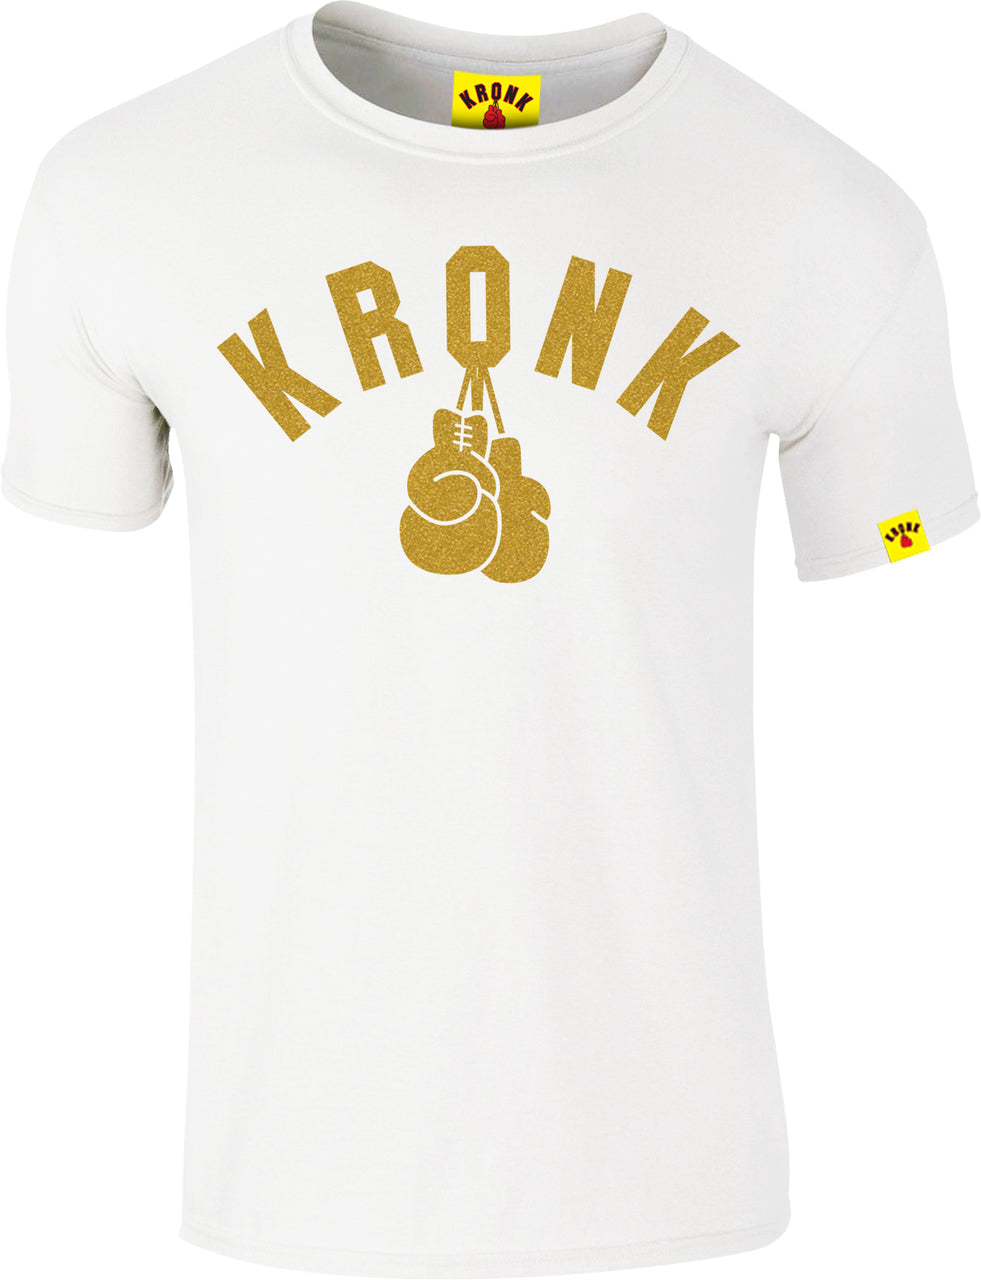 KRONK-One Colour Gloves Slim fit T Shirt White